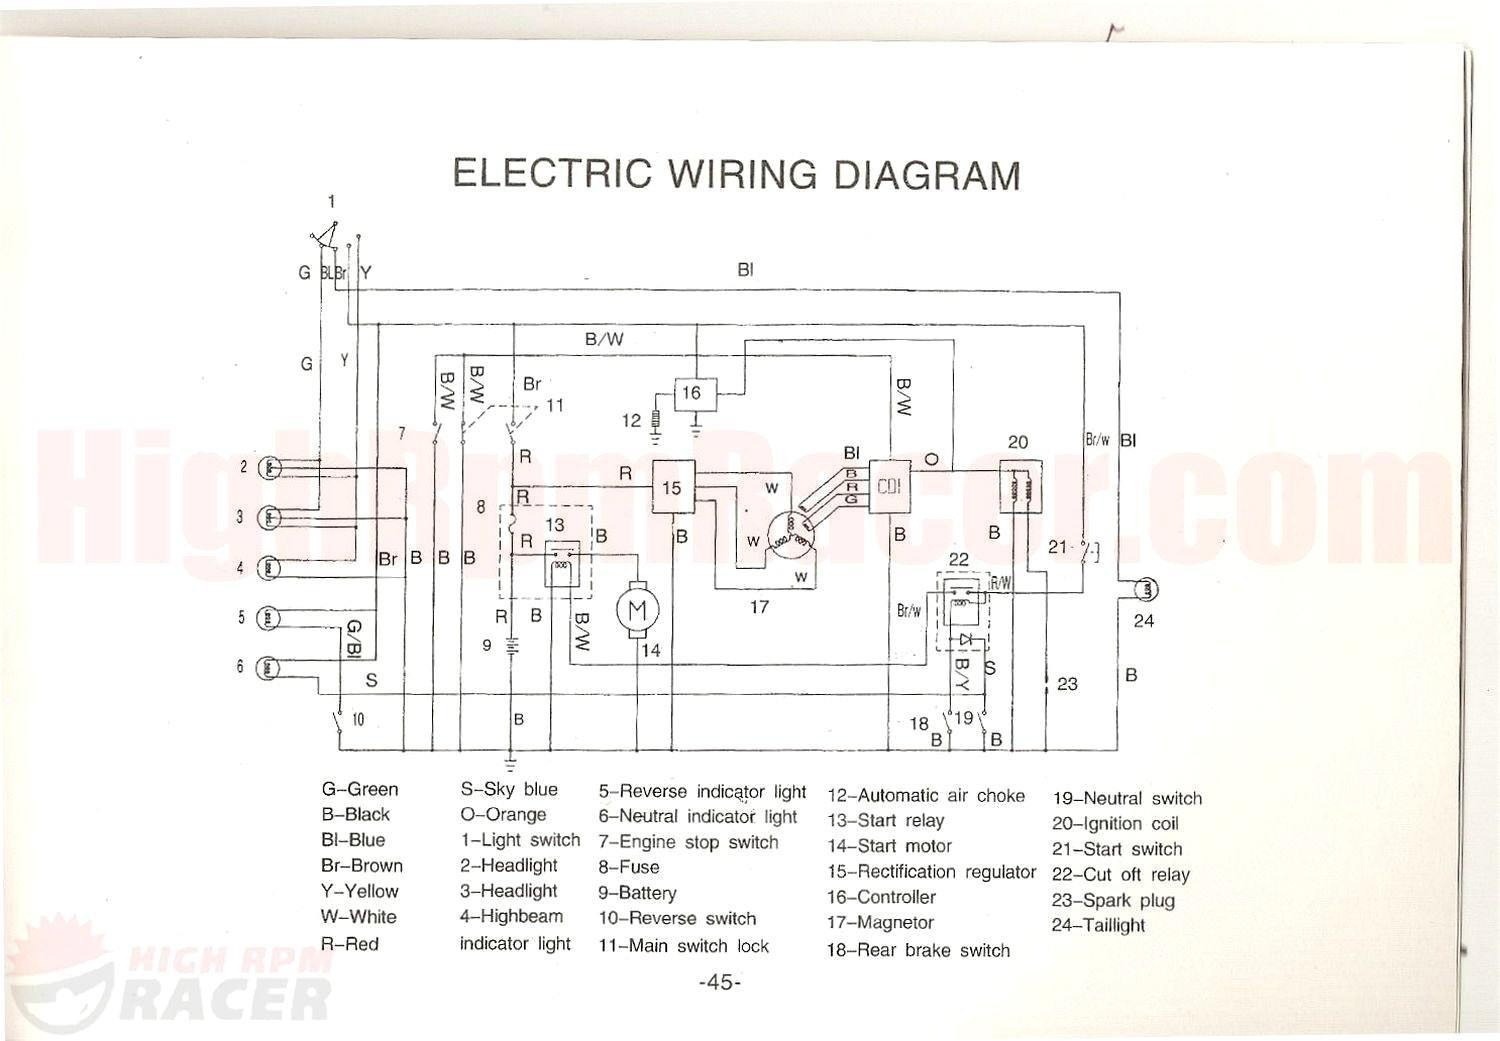 Four Wheeler Chinese 110Cc Atv Wiring Diagram from schematron.org